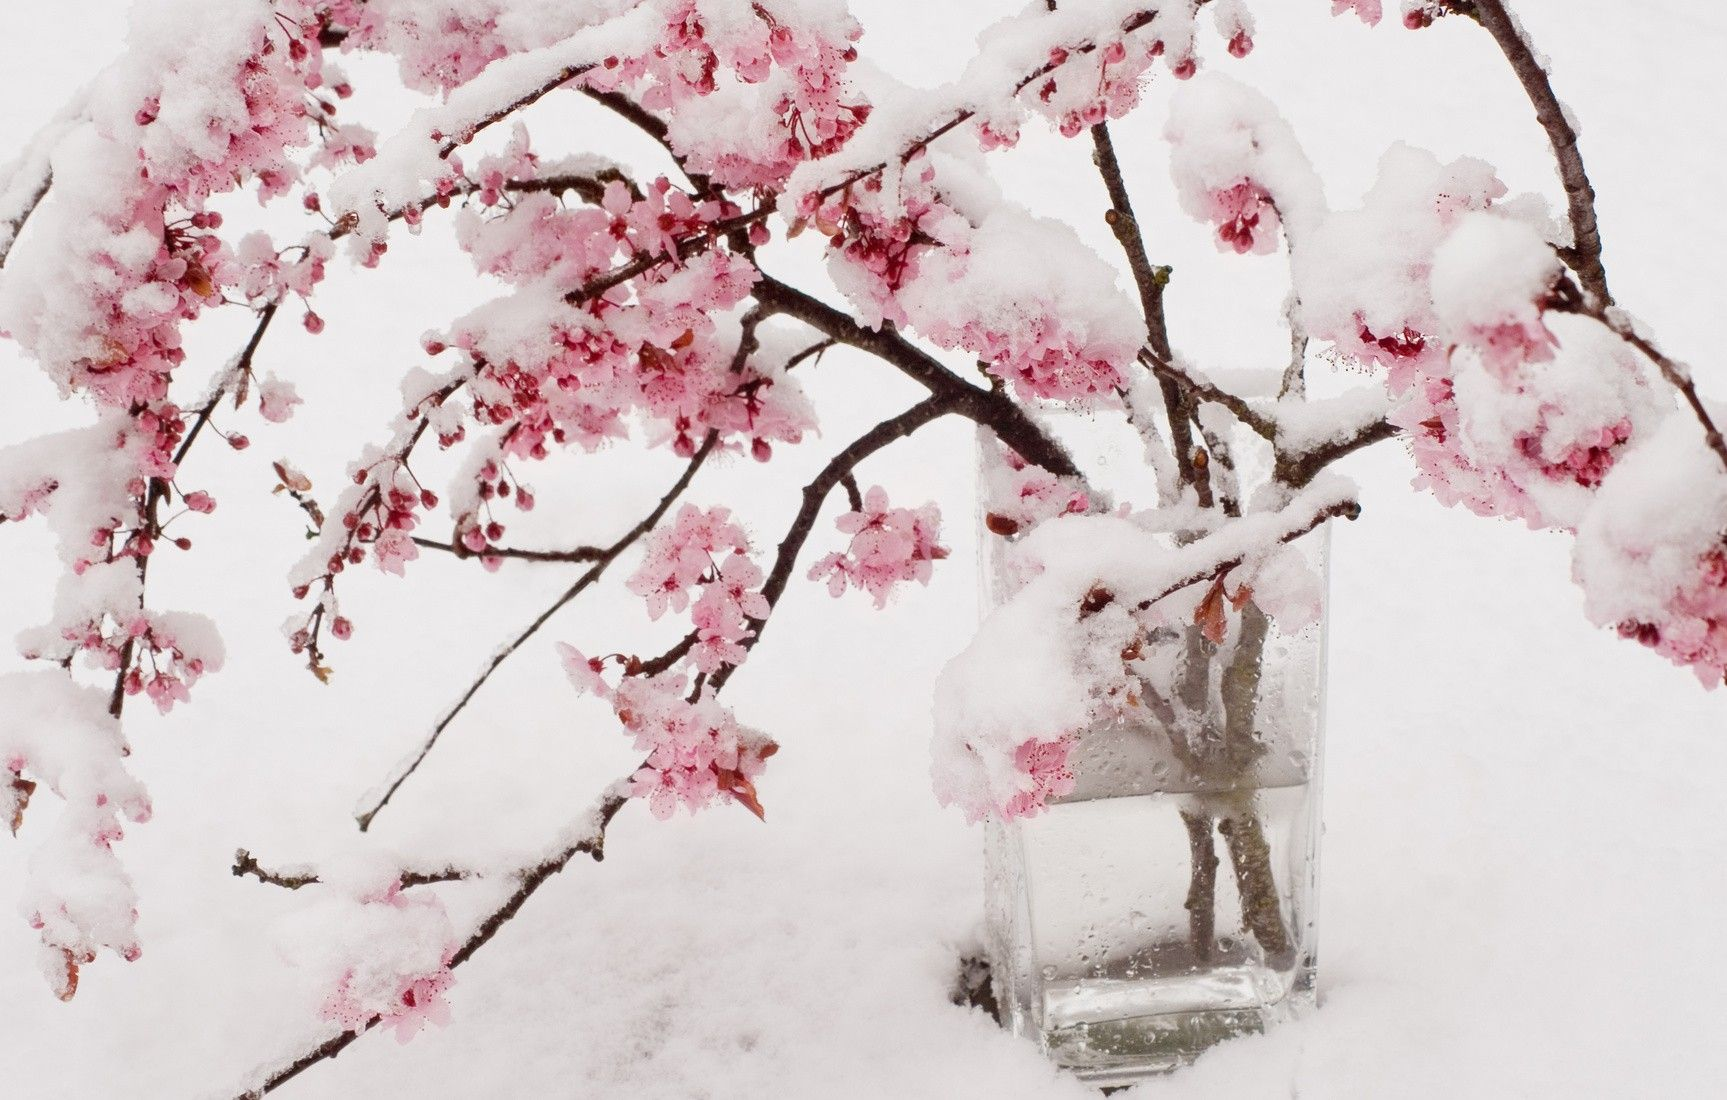 Cherry Blossom Snow Wallpapers Top Free Cherry Blossom